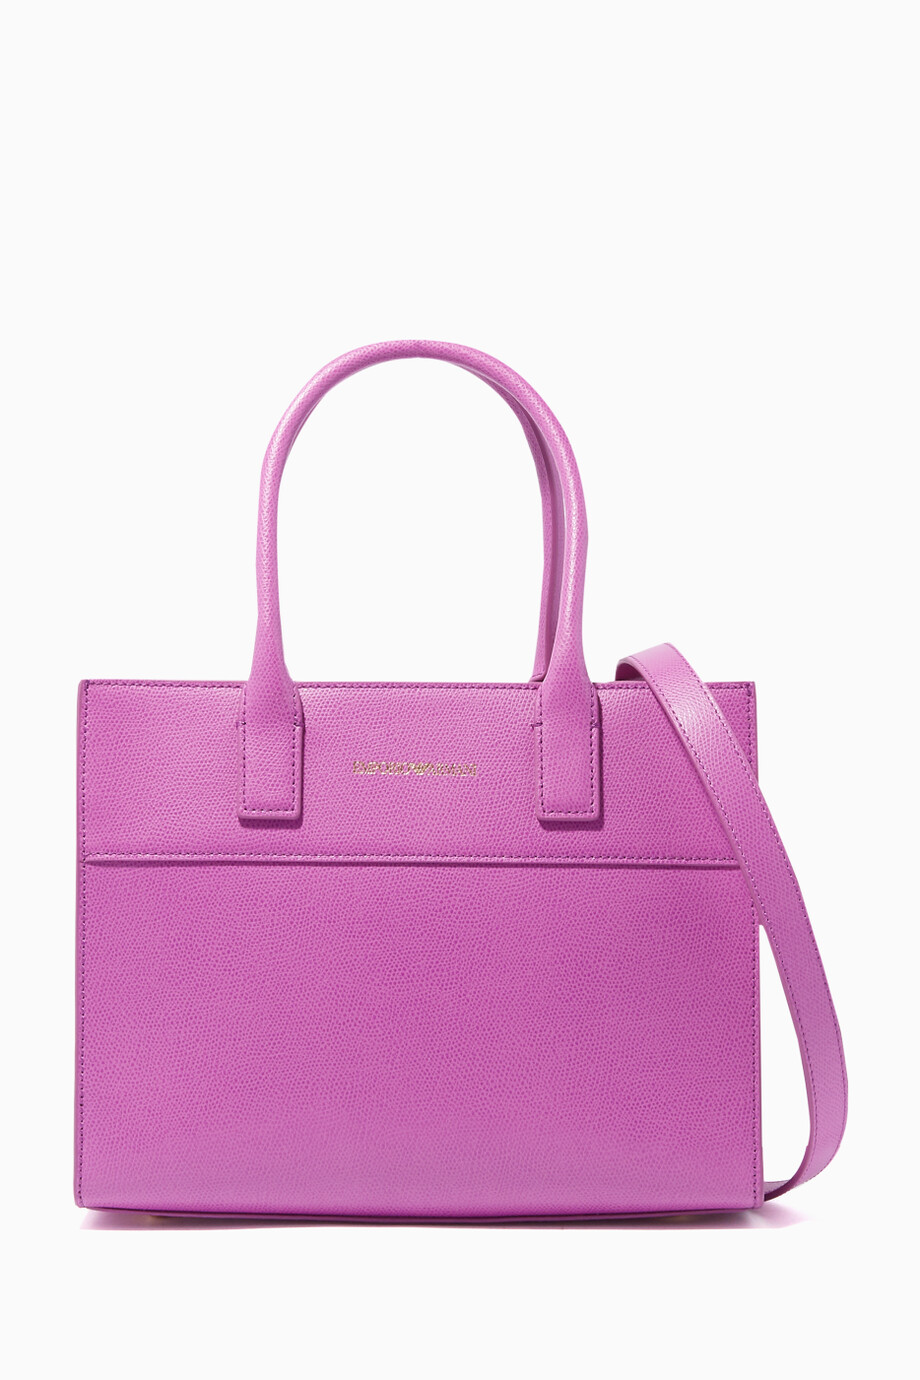 Shop Emporio Armani Pink Violet Structured Shopper Bag for Women ... dfb2cfa608b97